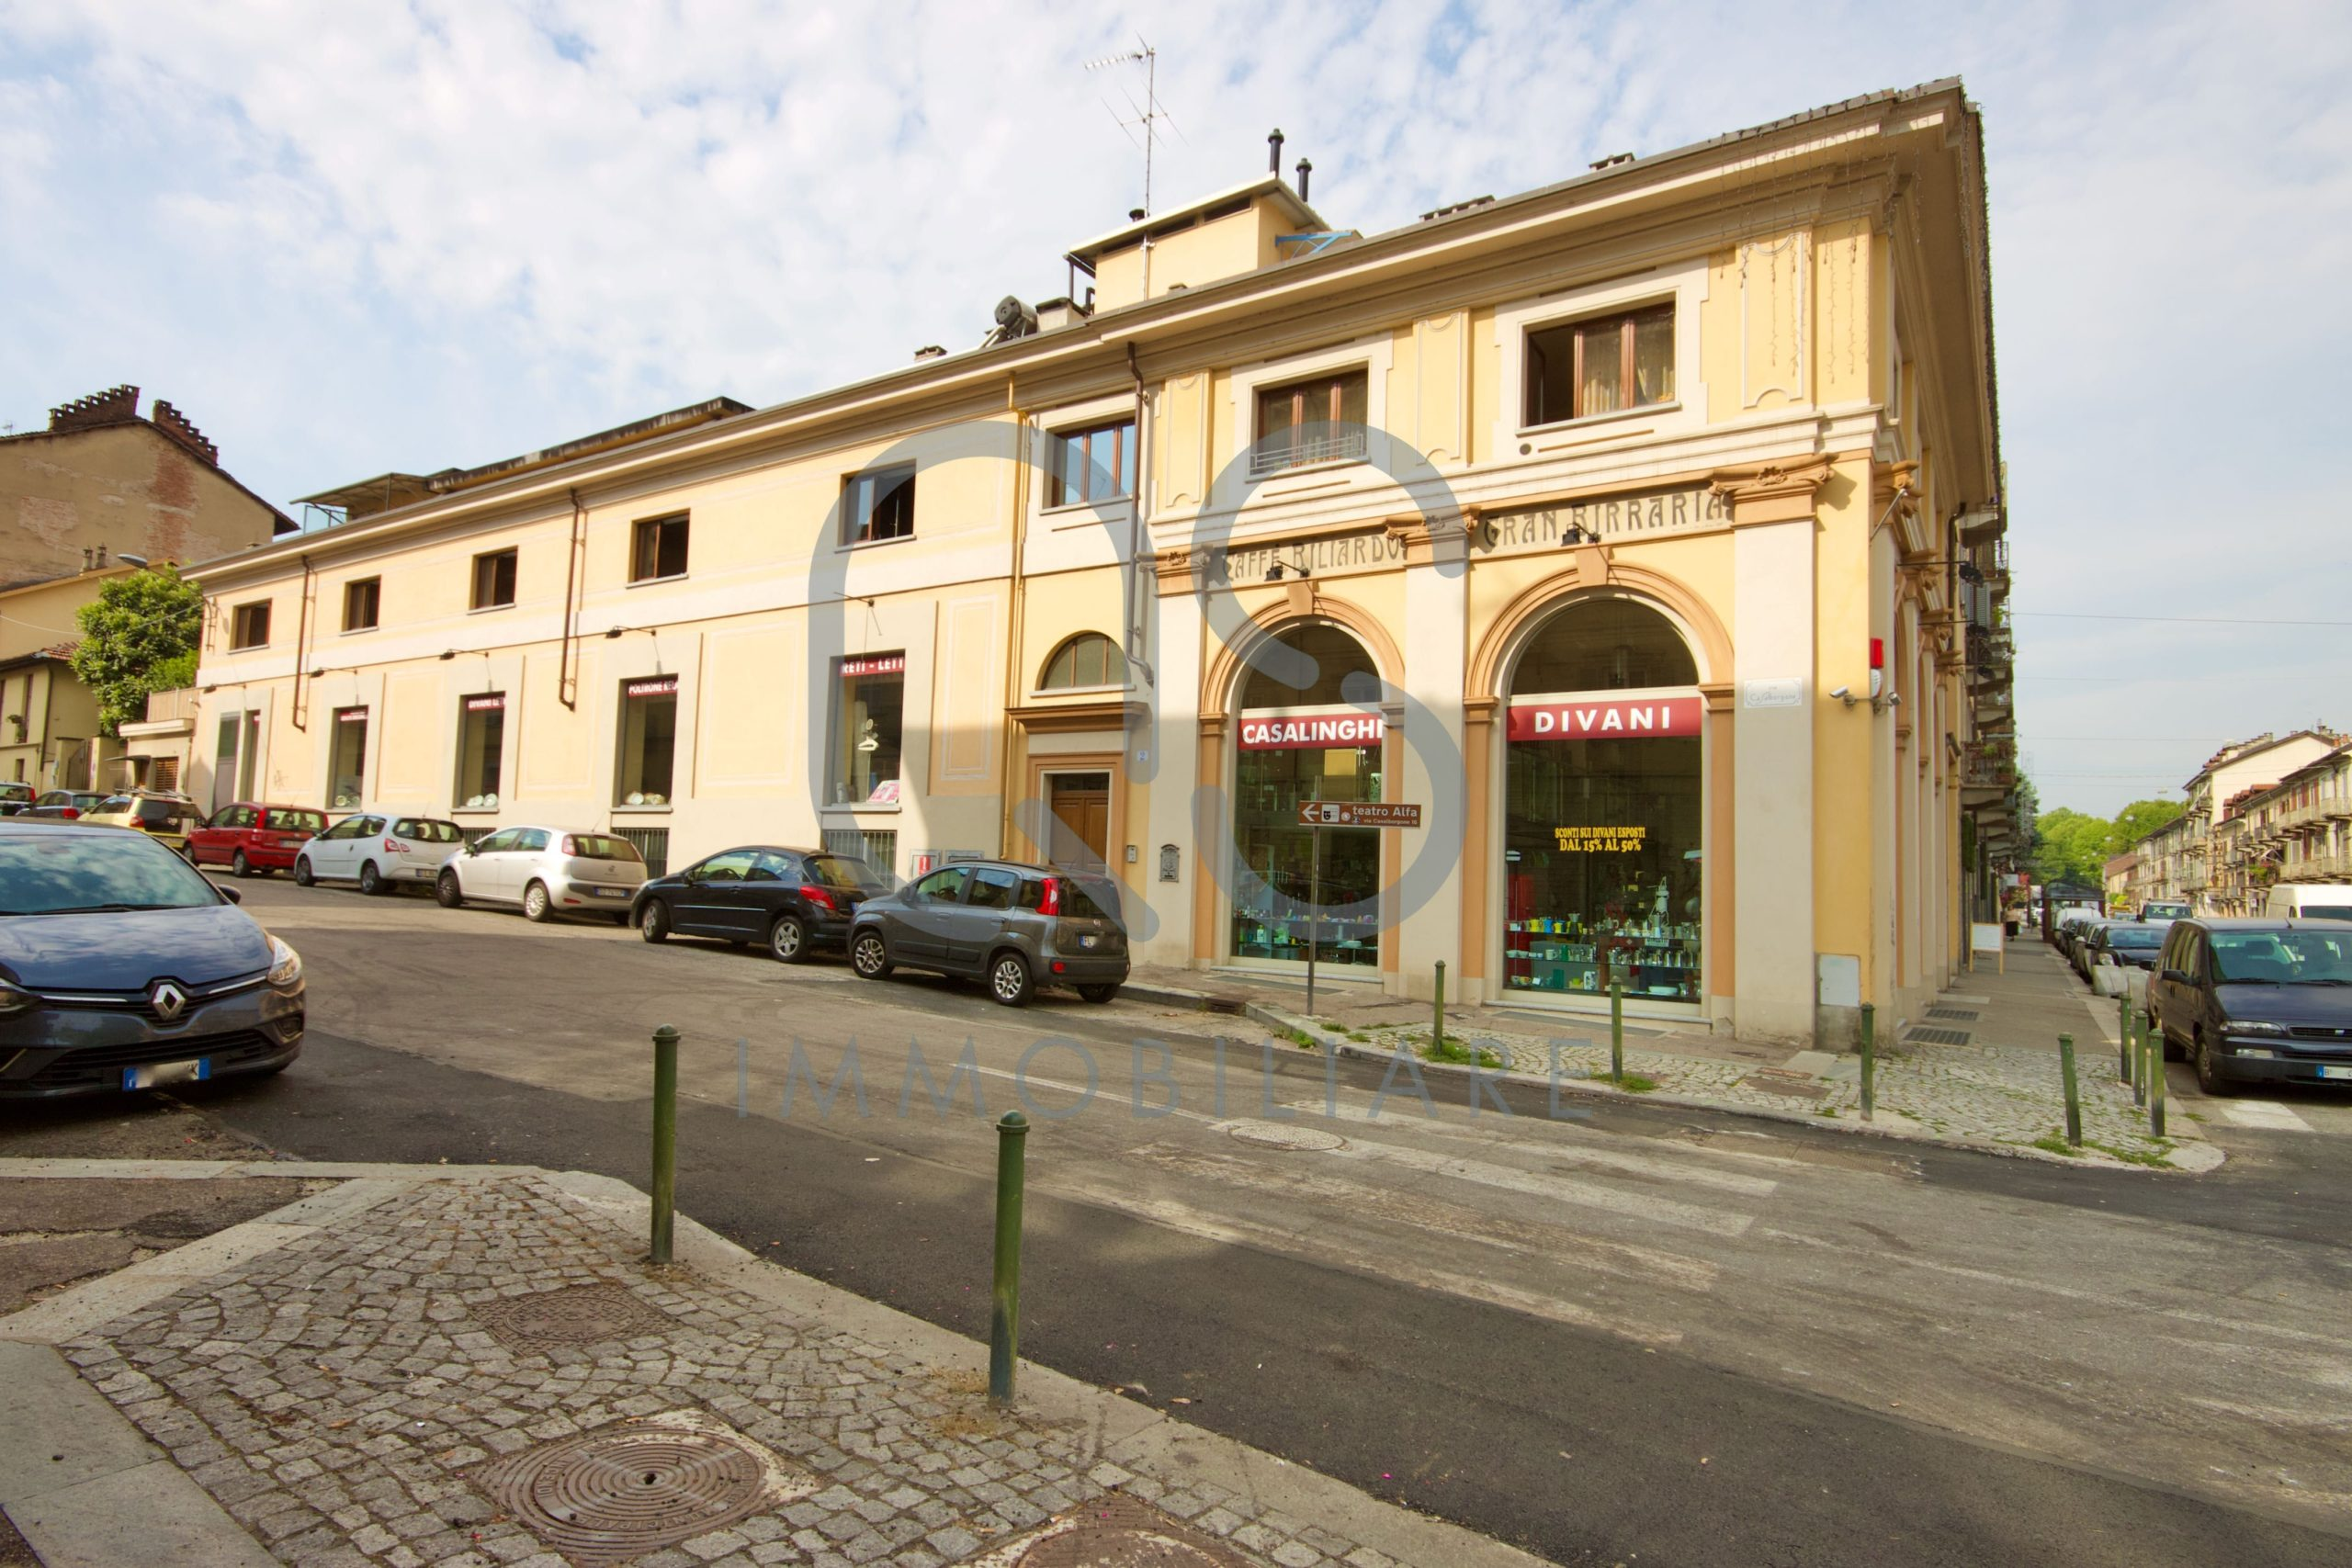 LOCALE COMMERCIALE IN AFFITTO